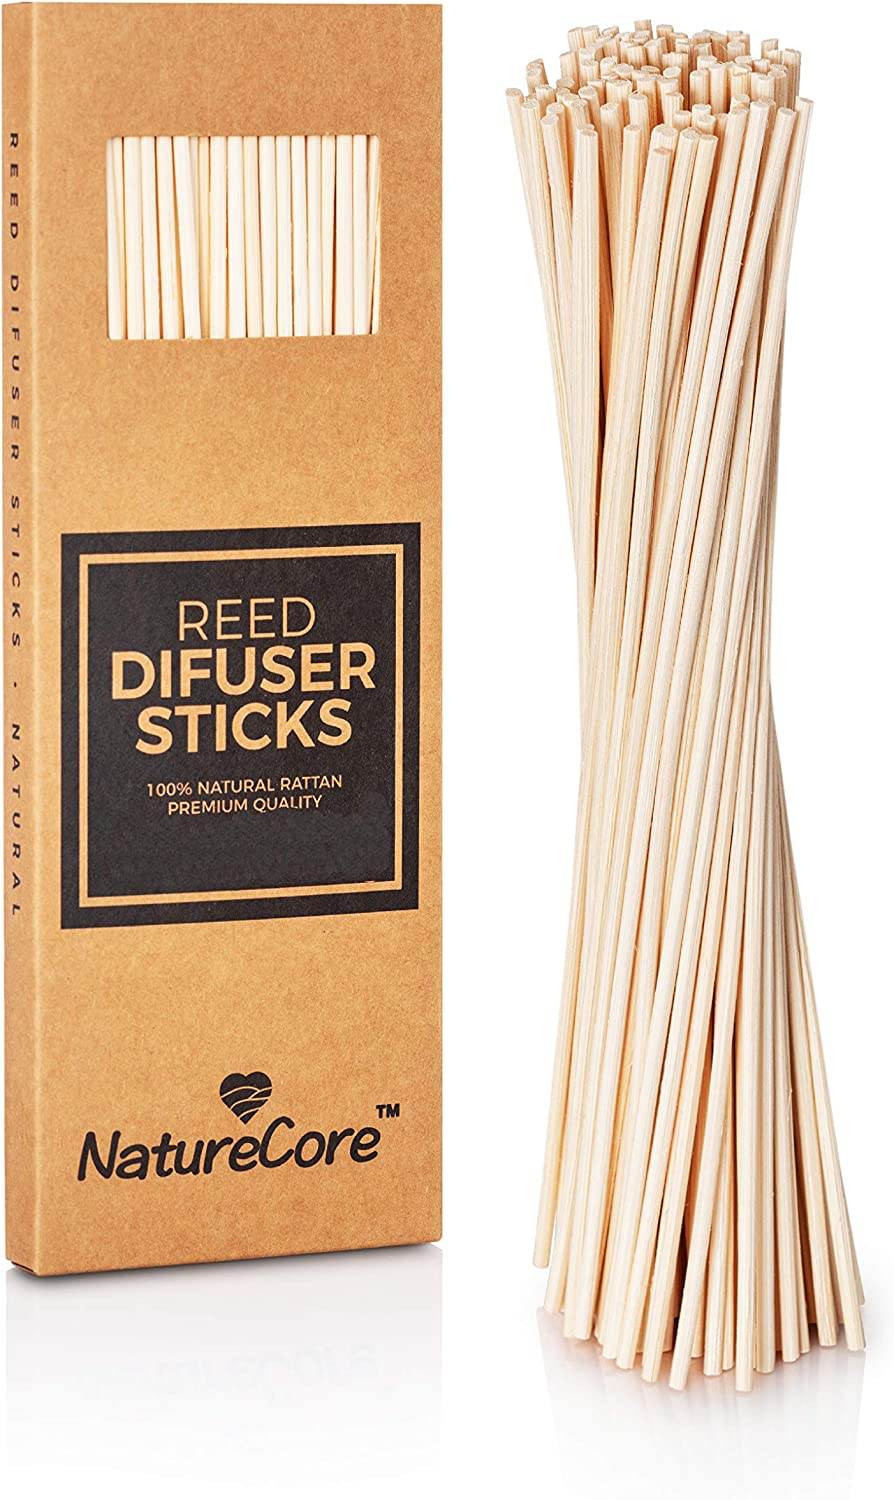 NatureCore New Rattan Outlet sale feature Reed Diffuser Super popular specialty store Stick Set 100 Inc PCS of - 7